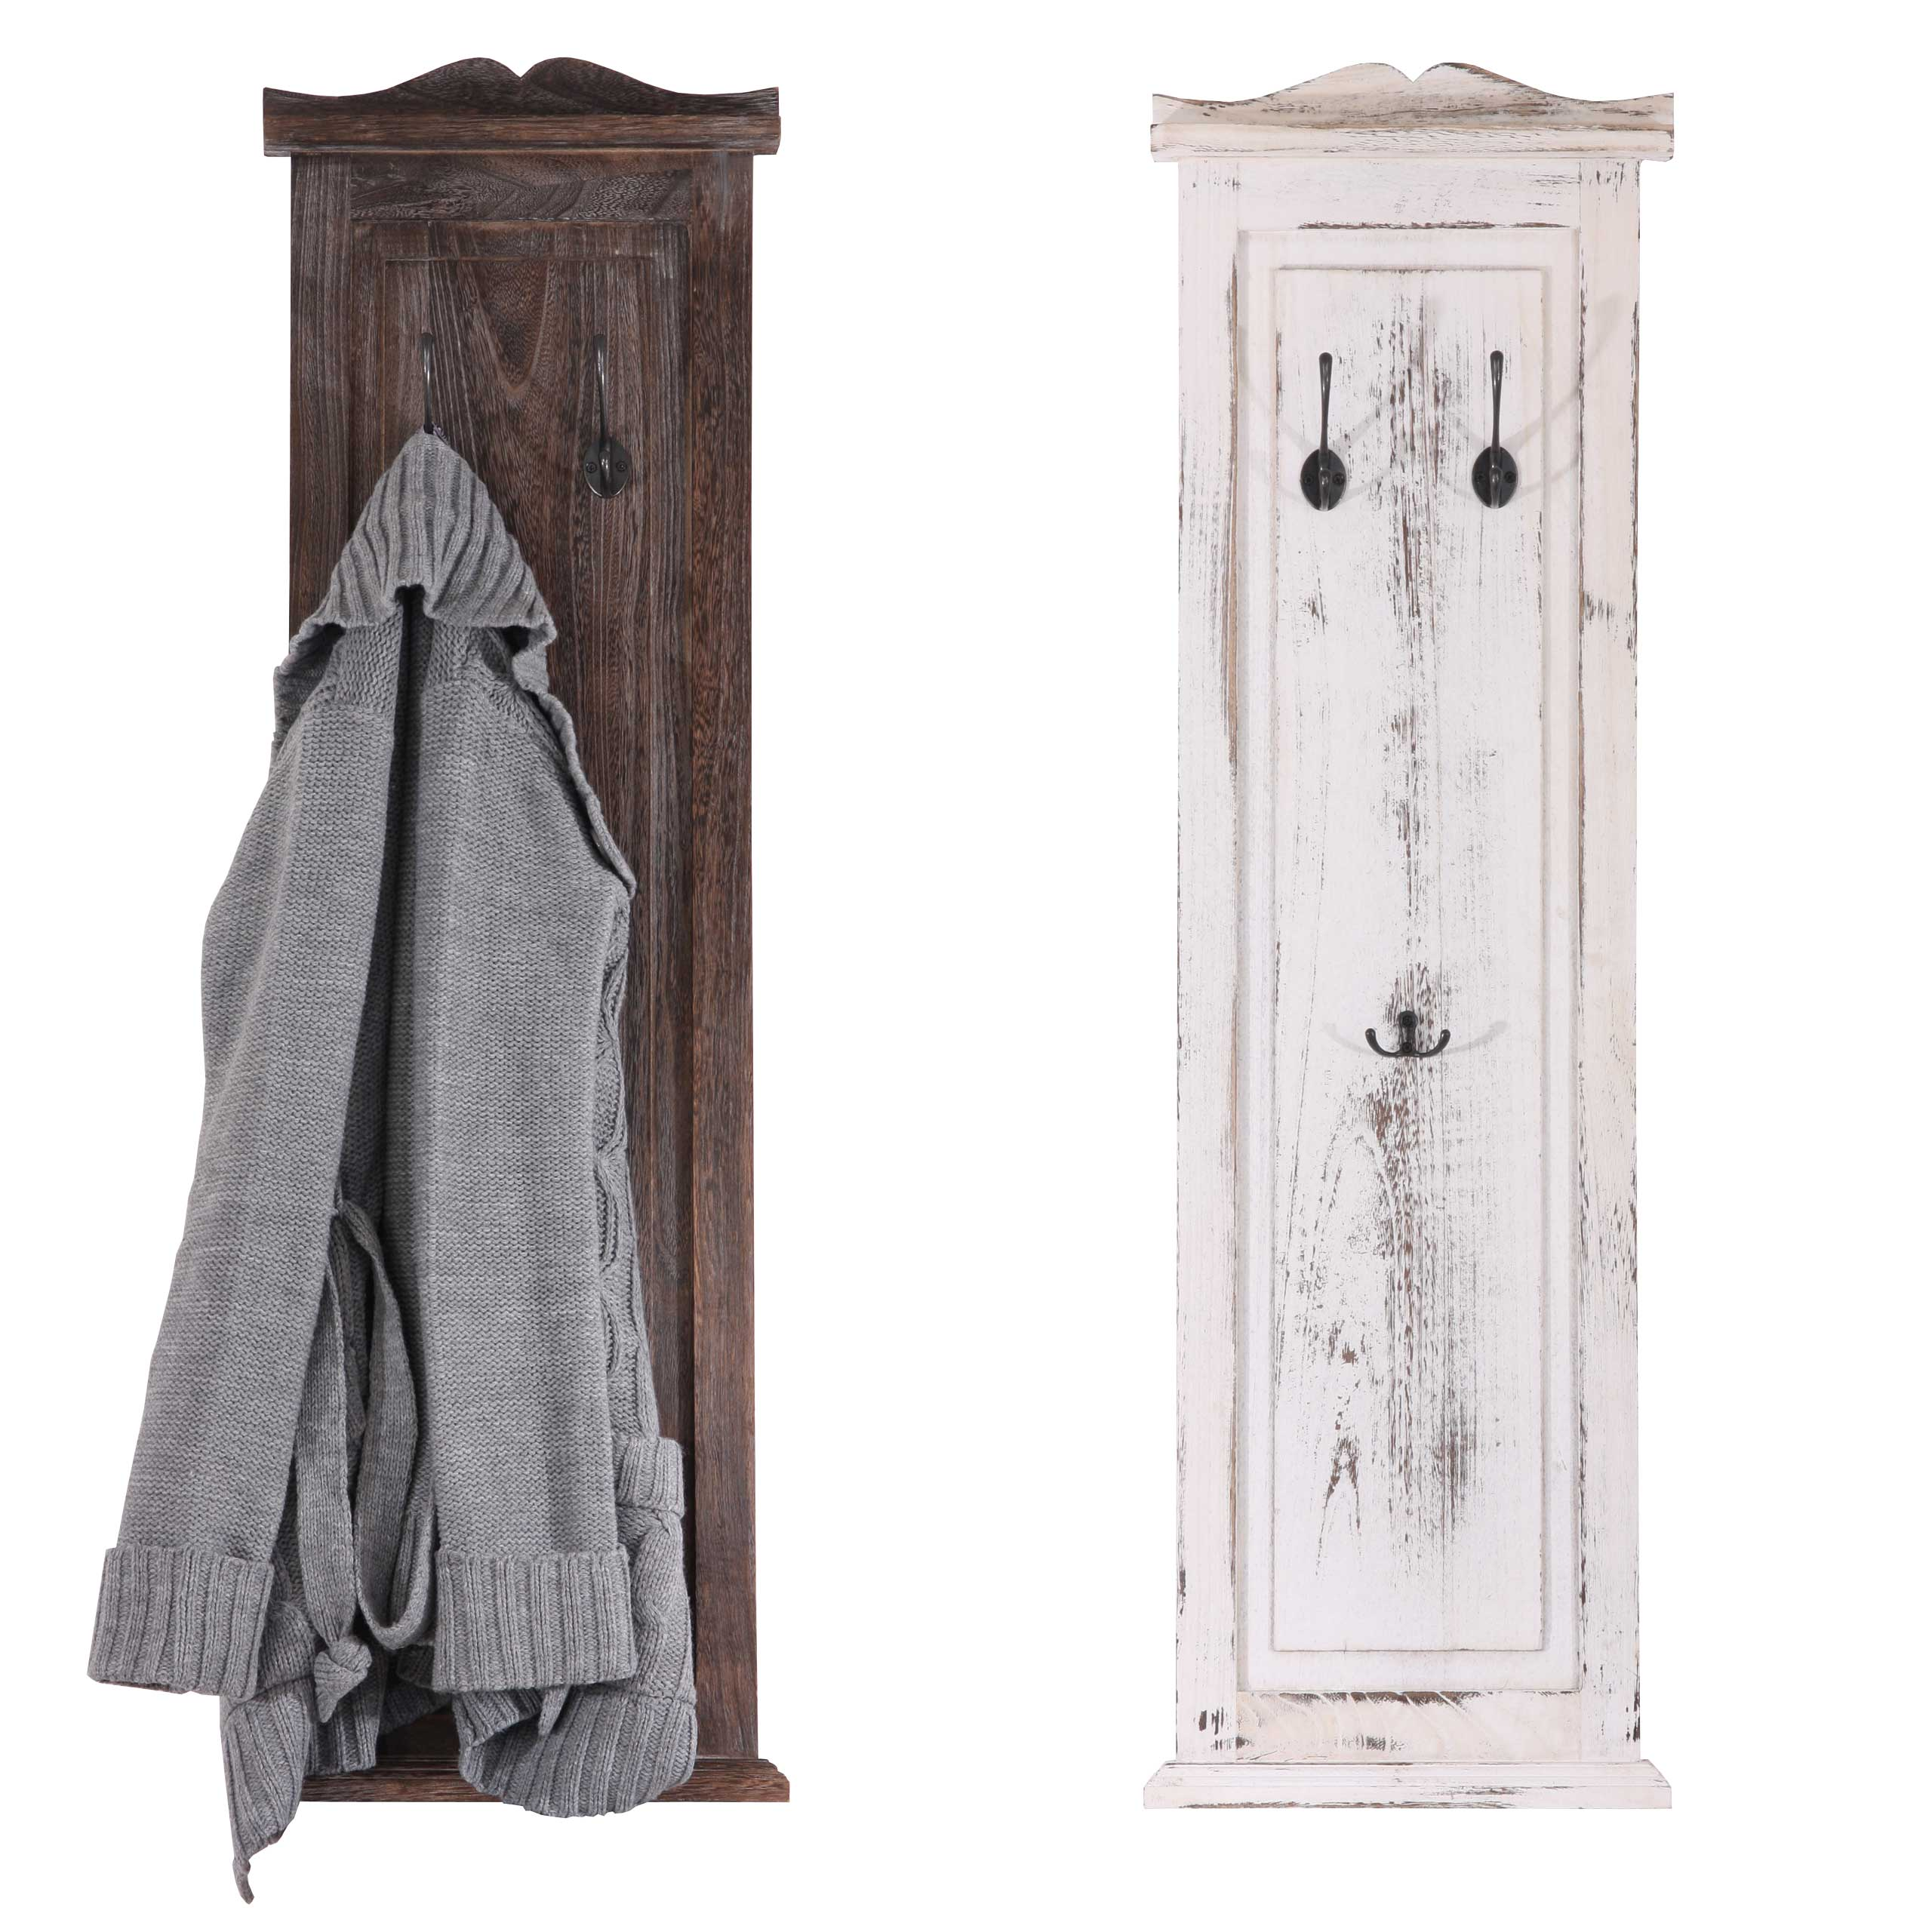 2x wandgarderobe shabby 109cm vintage weiss. Black Bedroom Furniture Sets. Home Design Ideas